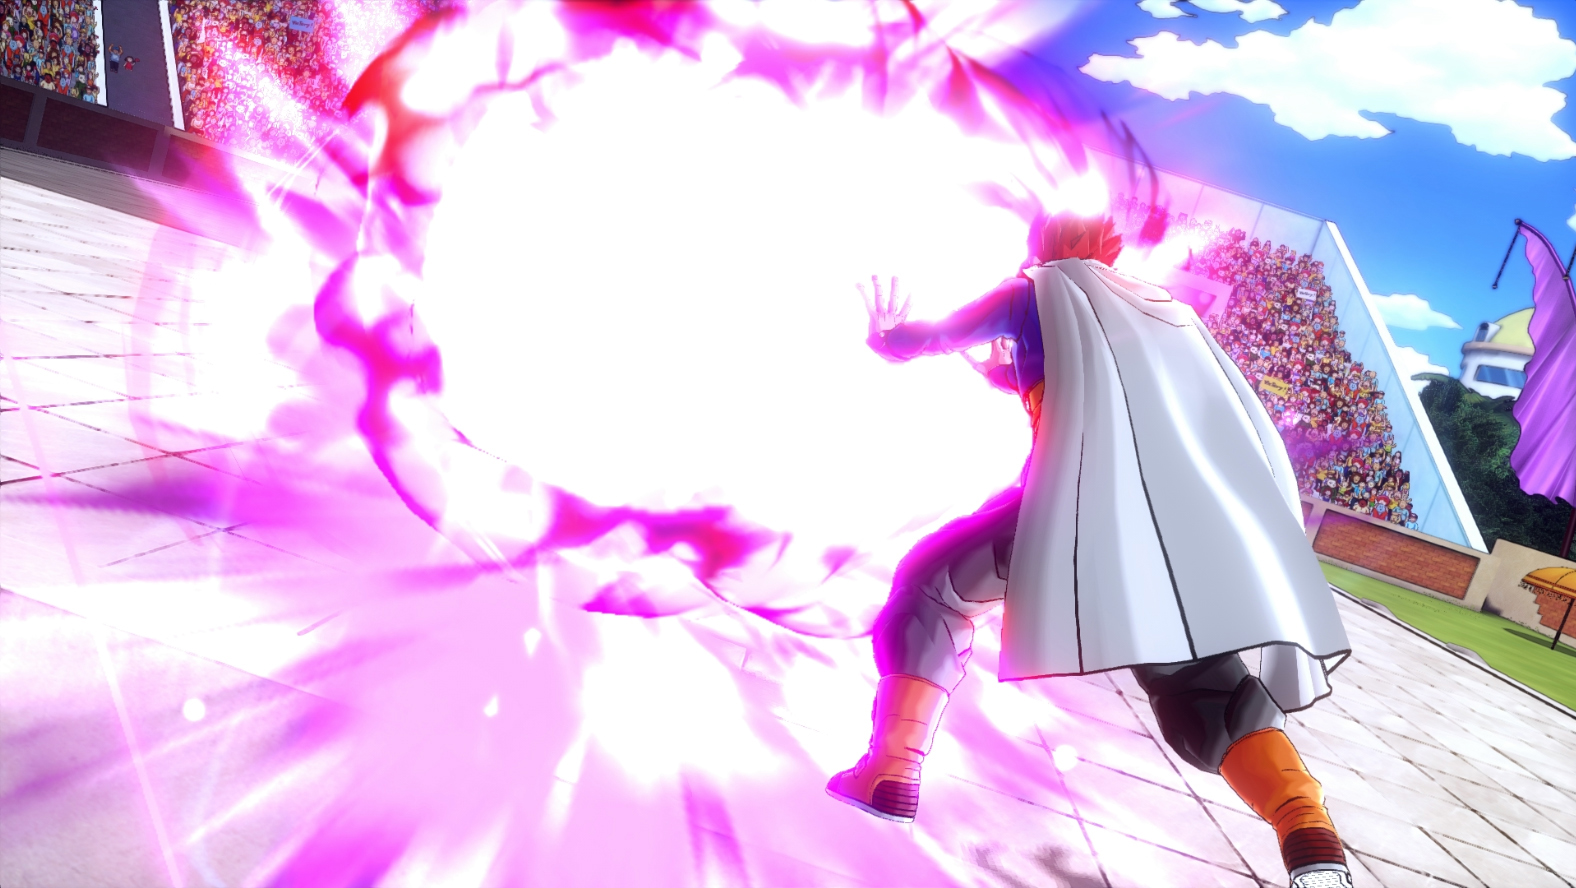 Dragon Ball Xenoverse Jan 2015 Screenshots 36